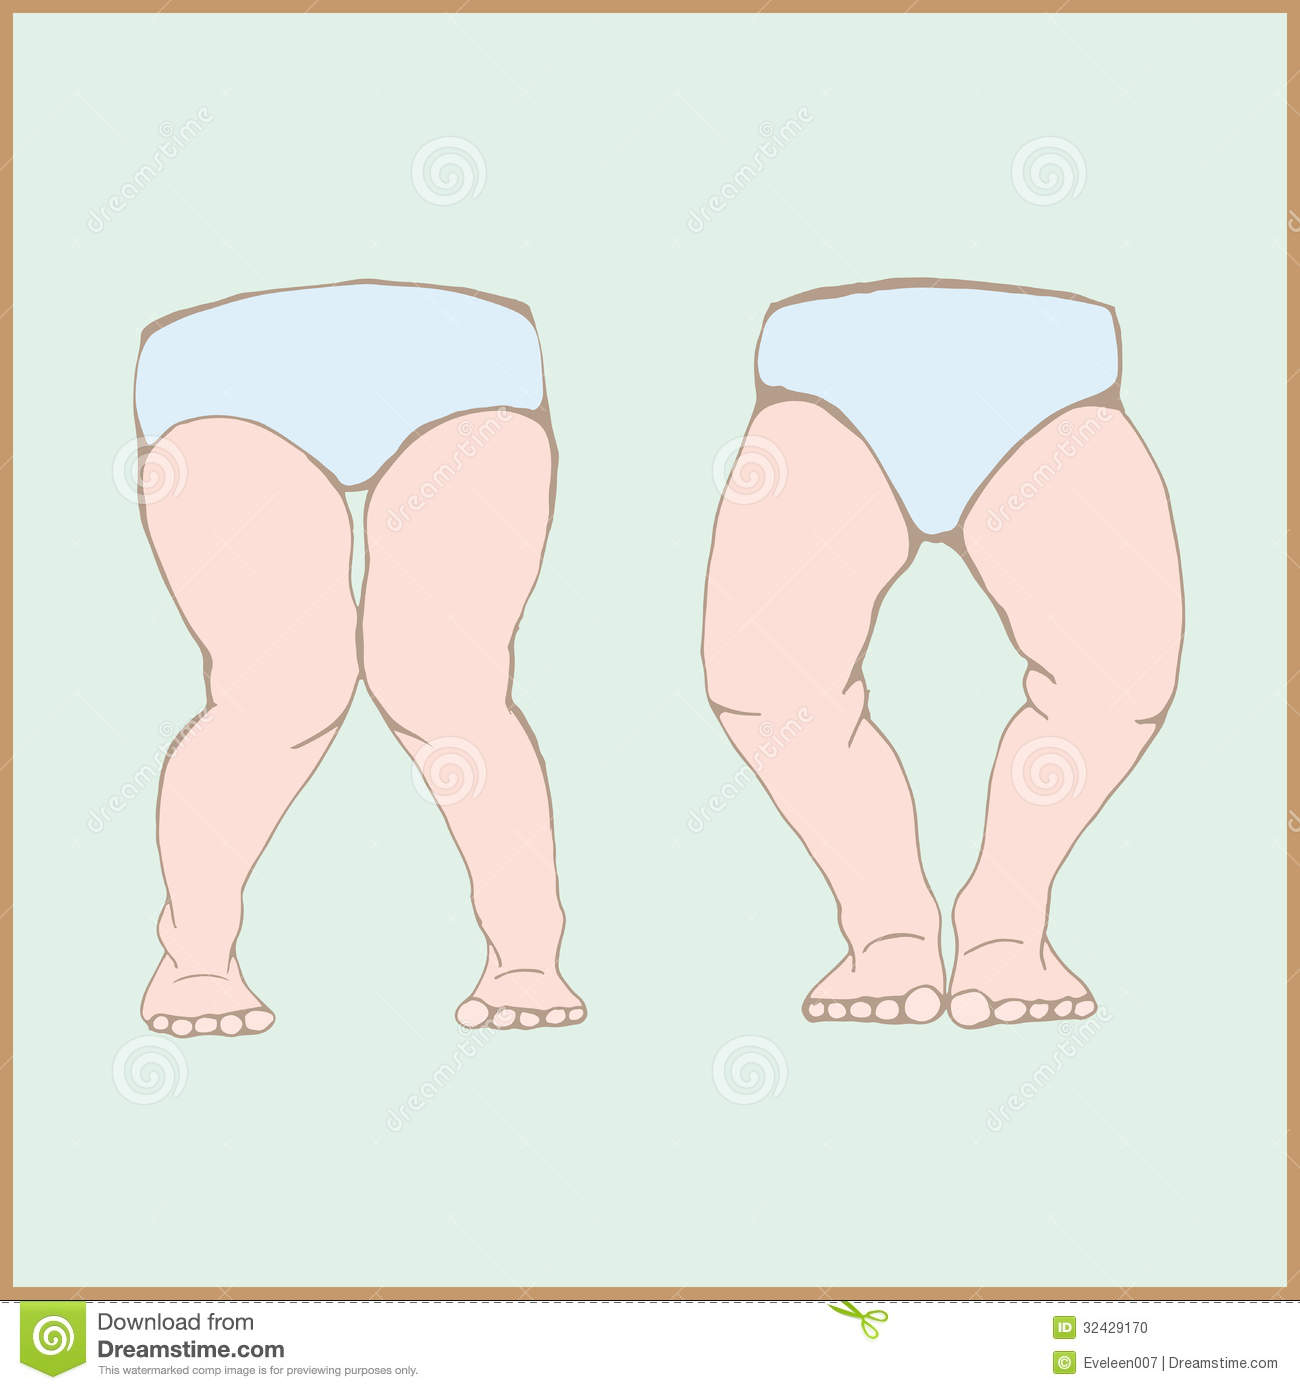 Genu varum, genu valgum - a physical legs deformity, bowing of the leg ...